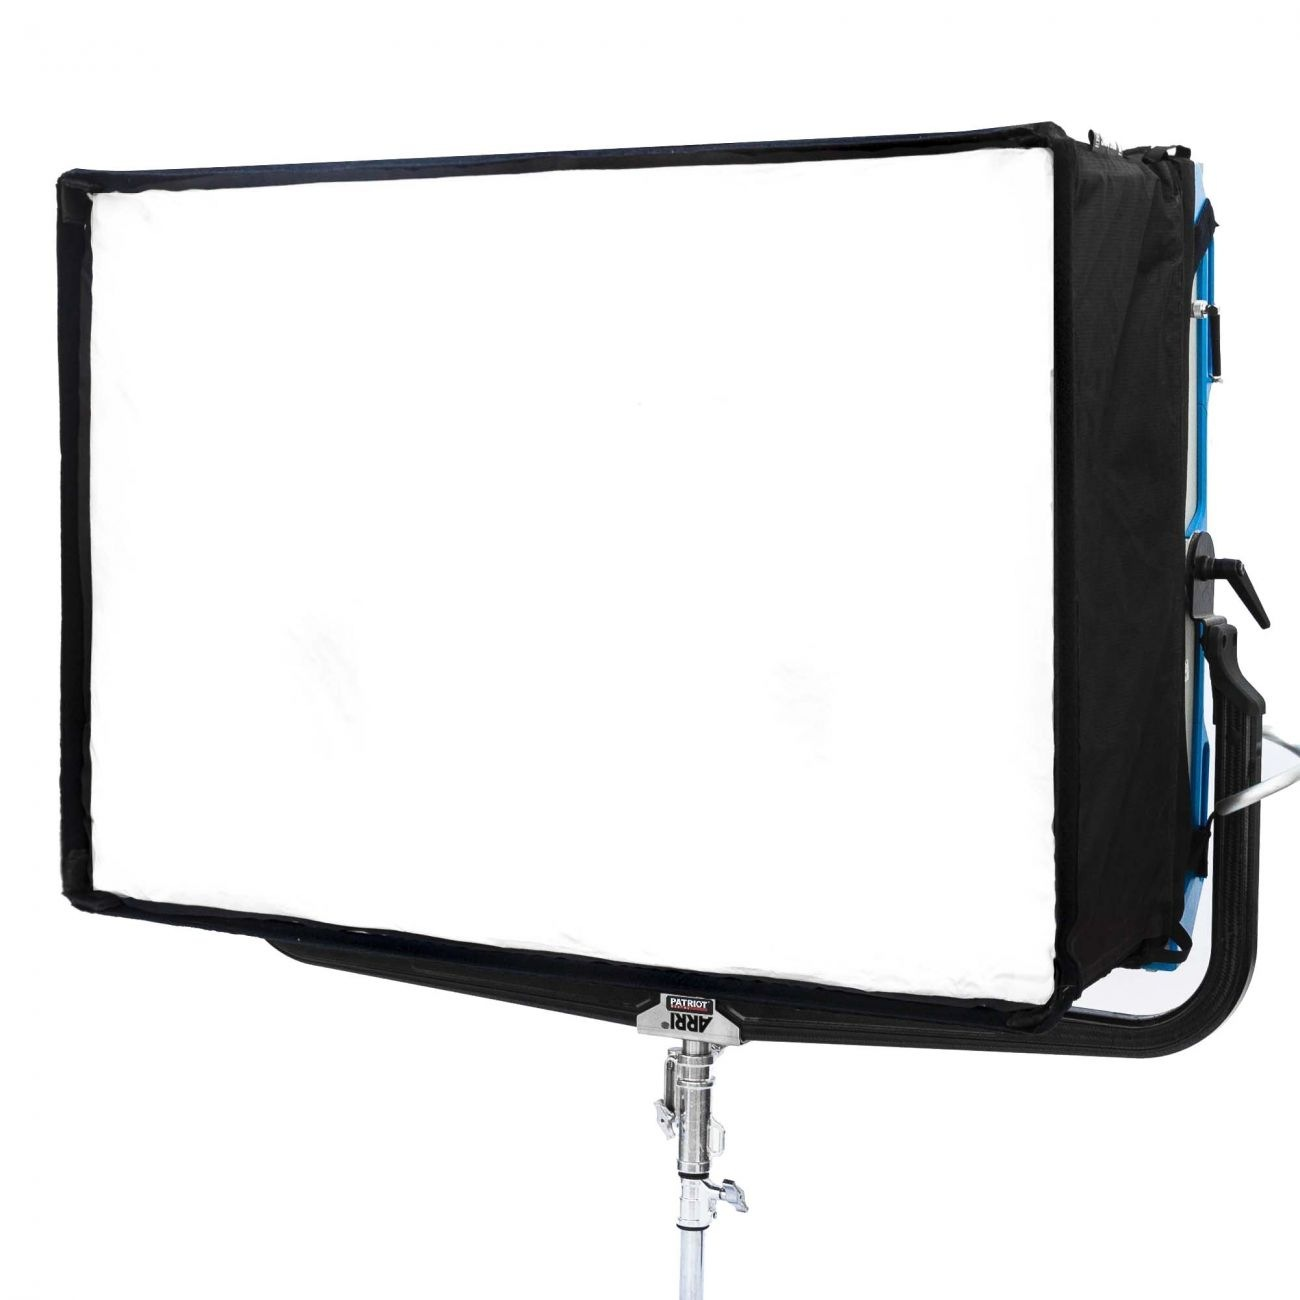 Softbox SnapBox SBAX360 for S360